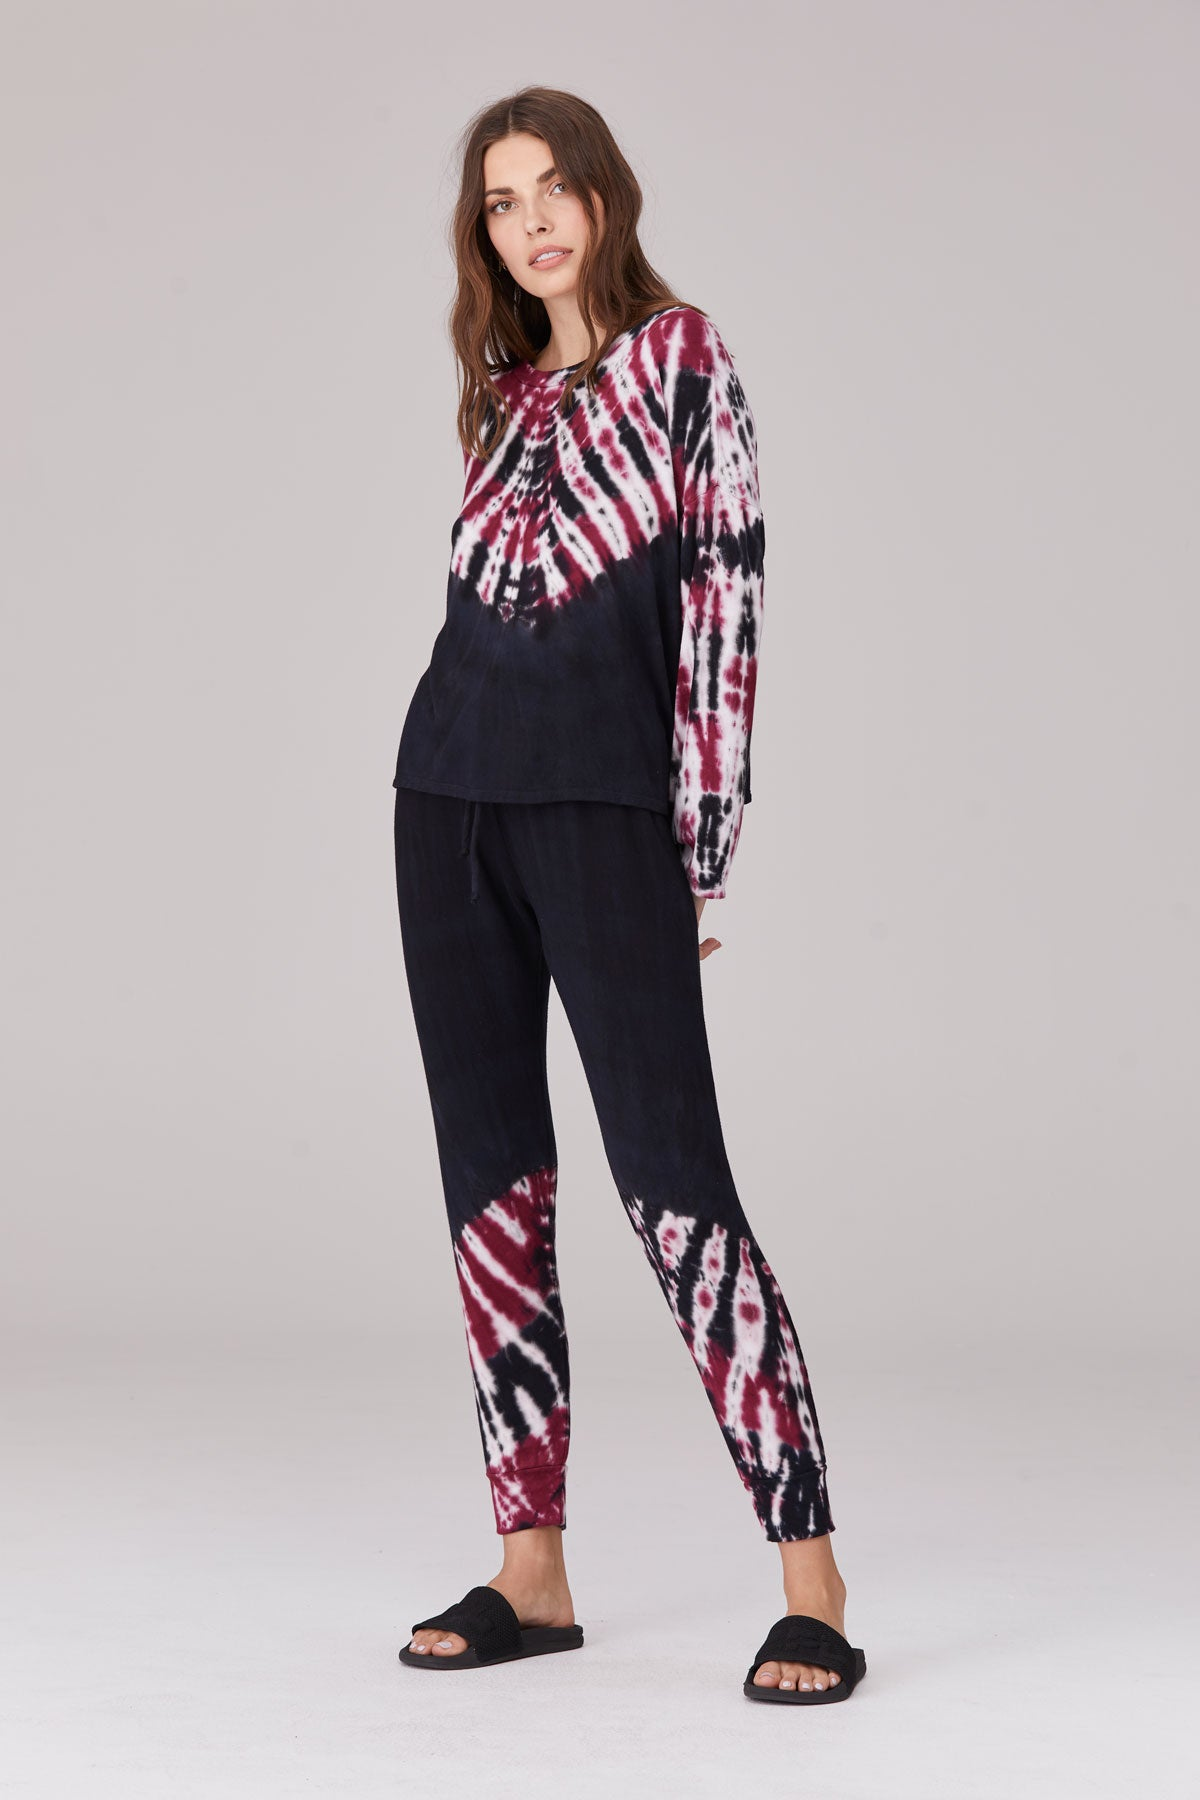 LNA Milky Way Tie Dye Sweat Pant